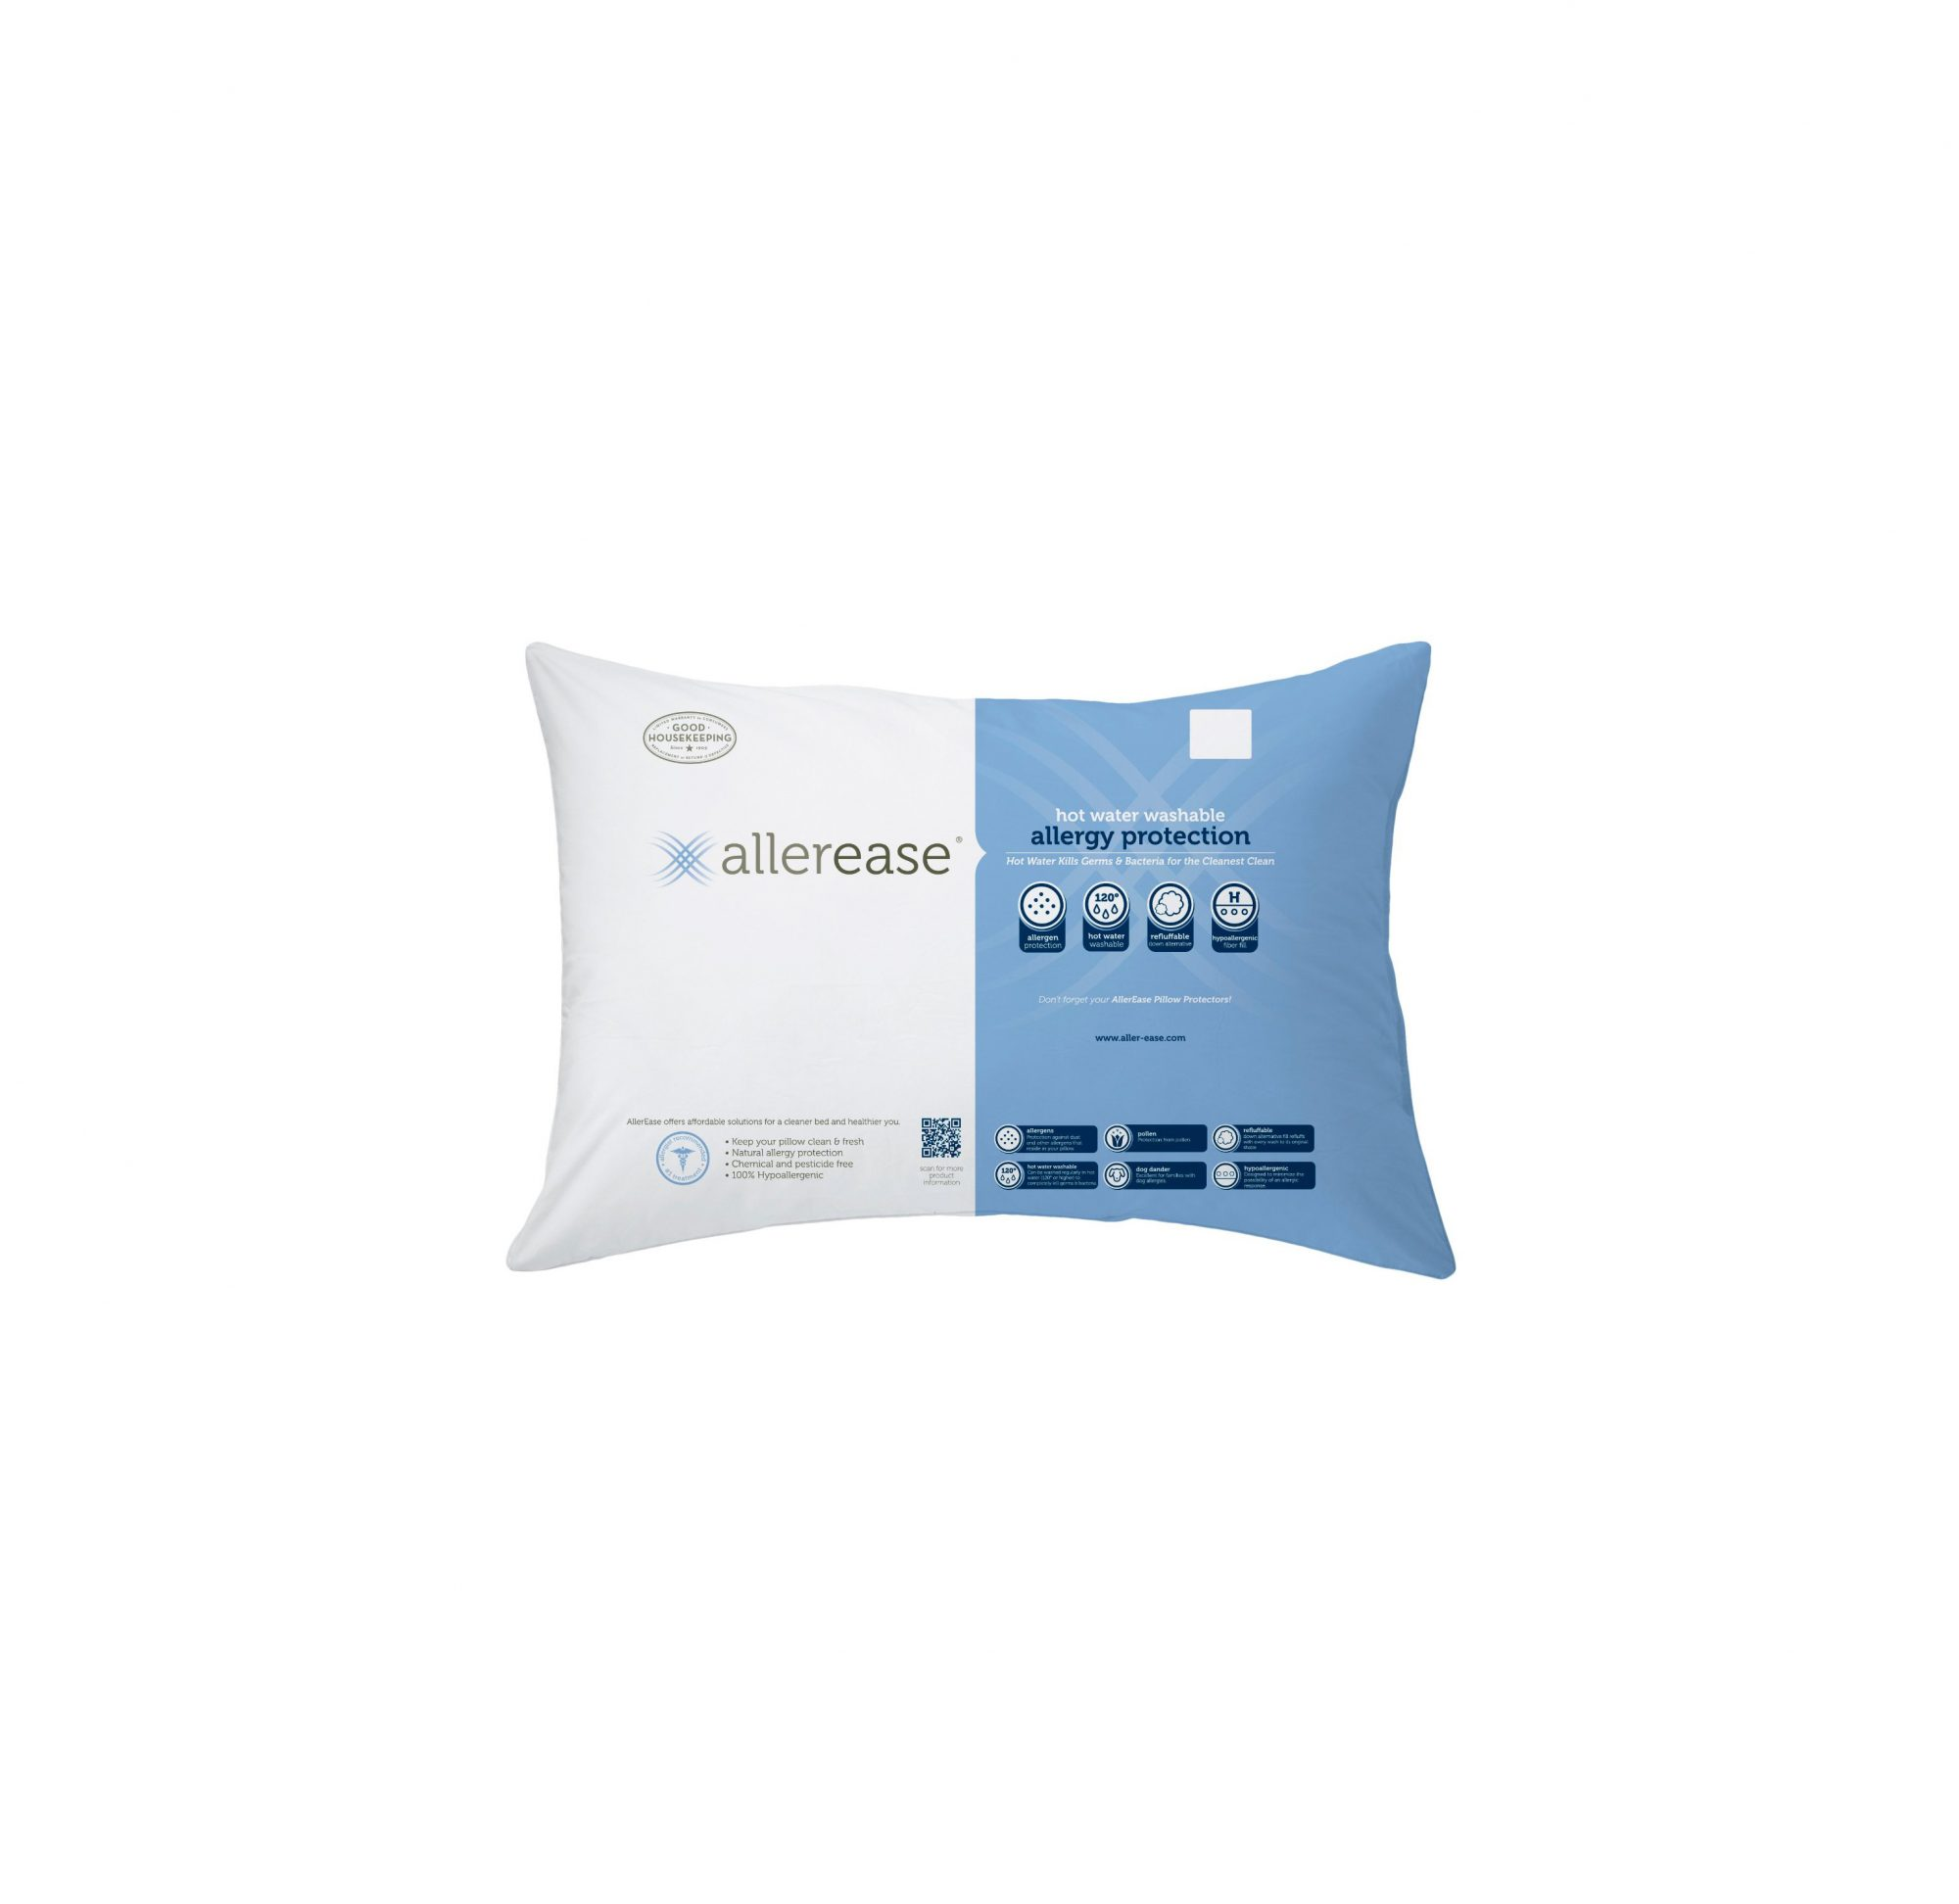 AllerEase Hot Water Washable Allergy Protection Pillow